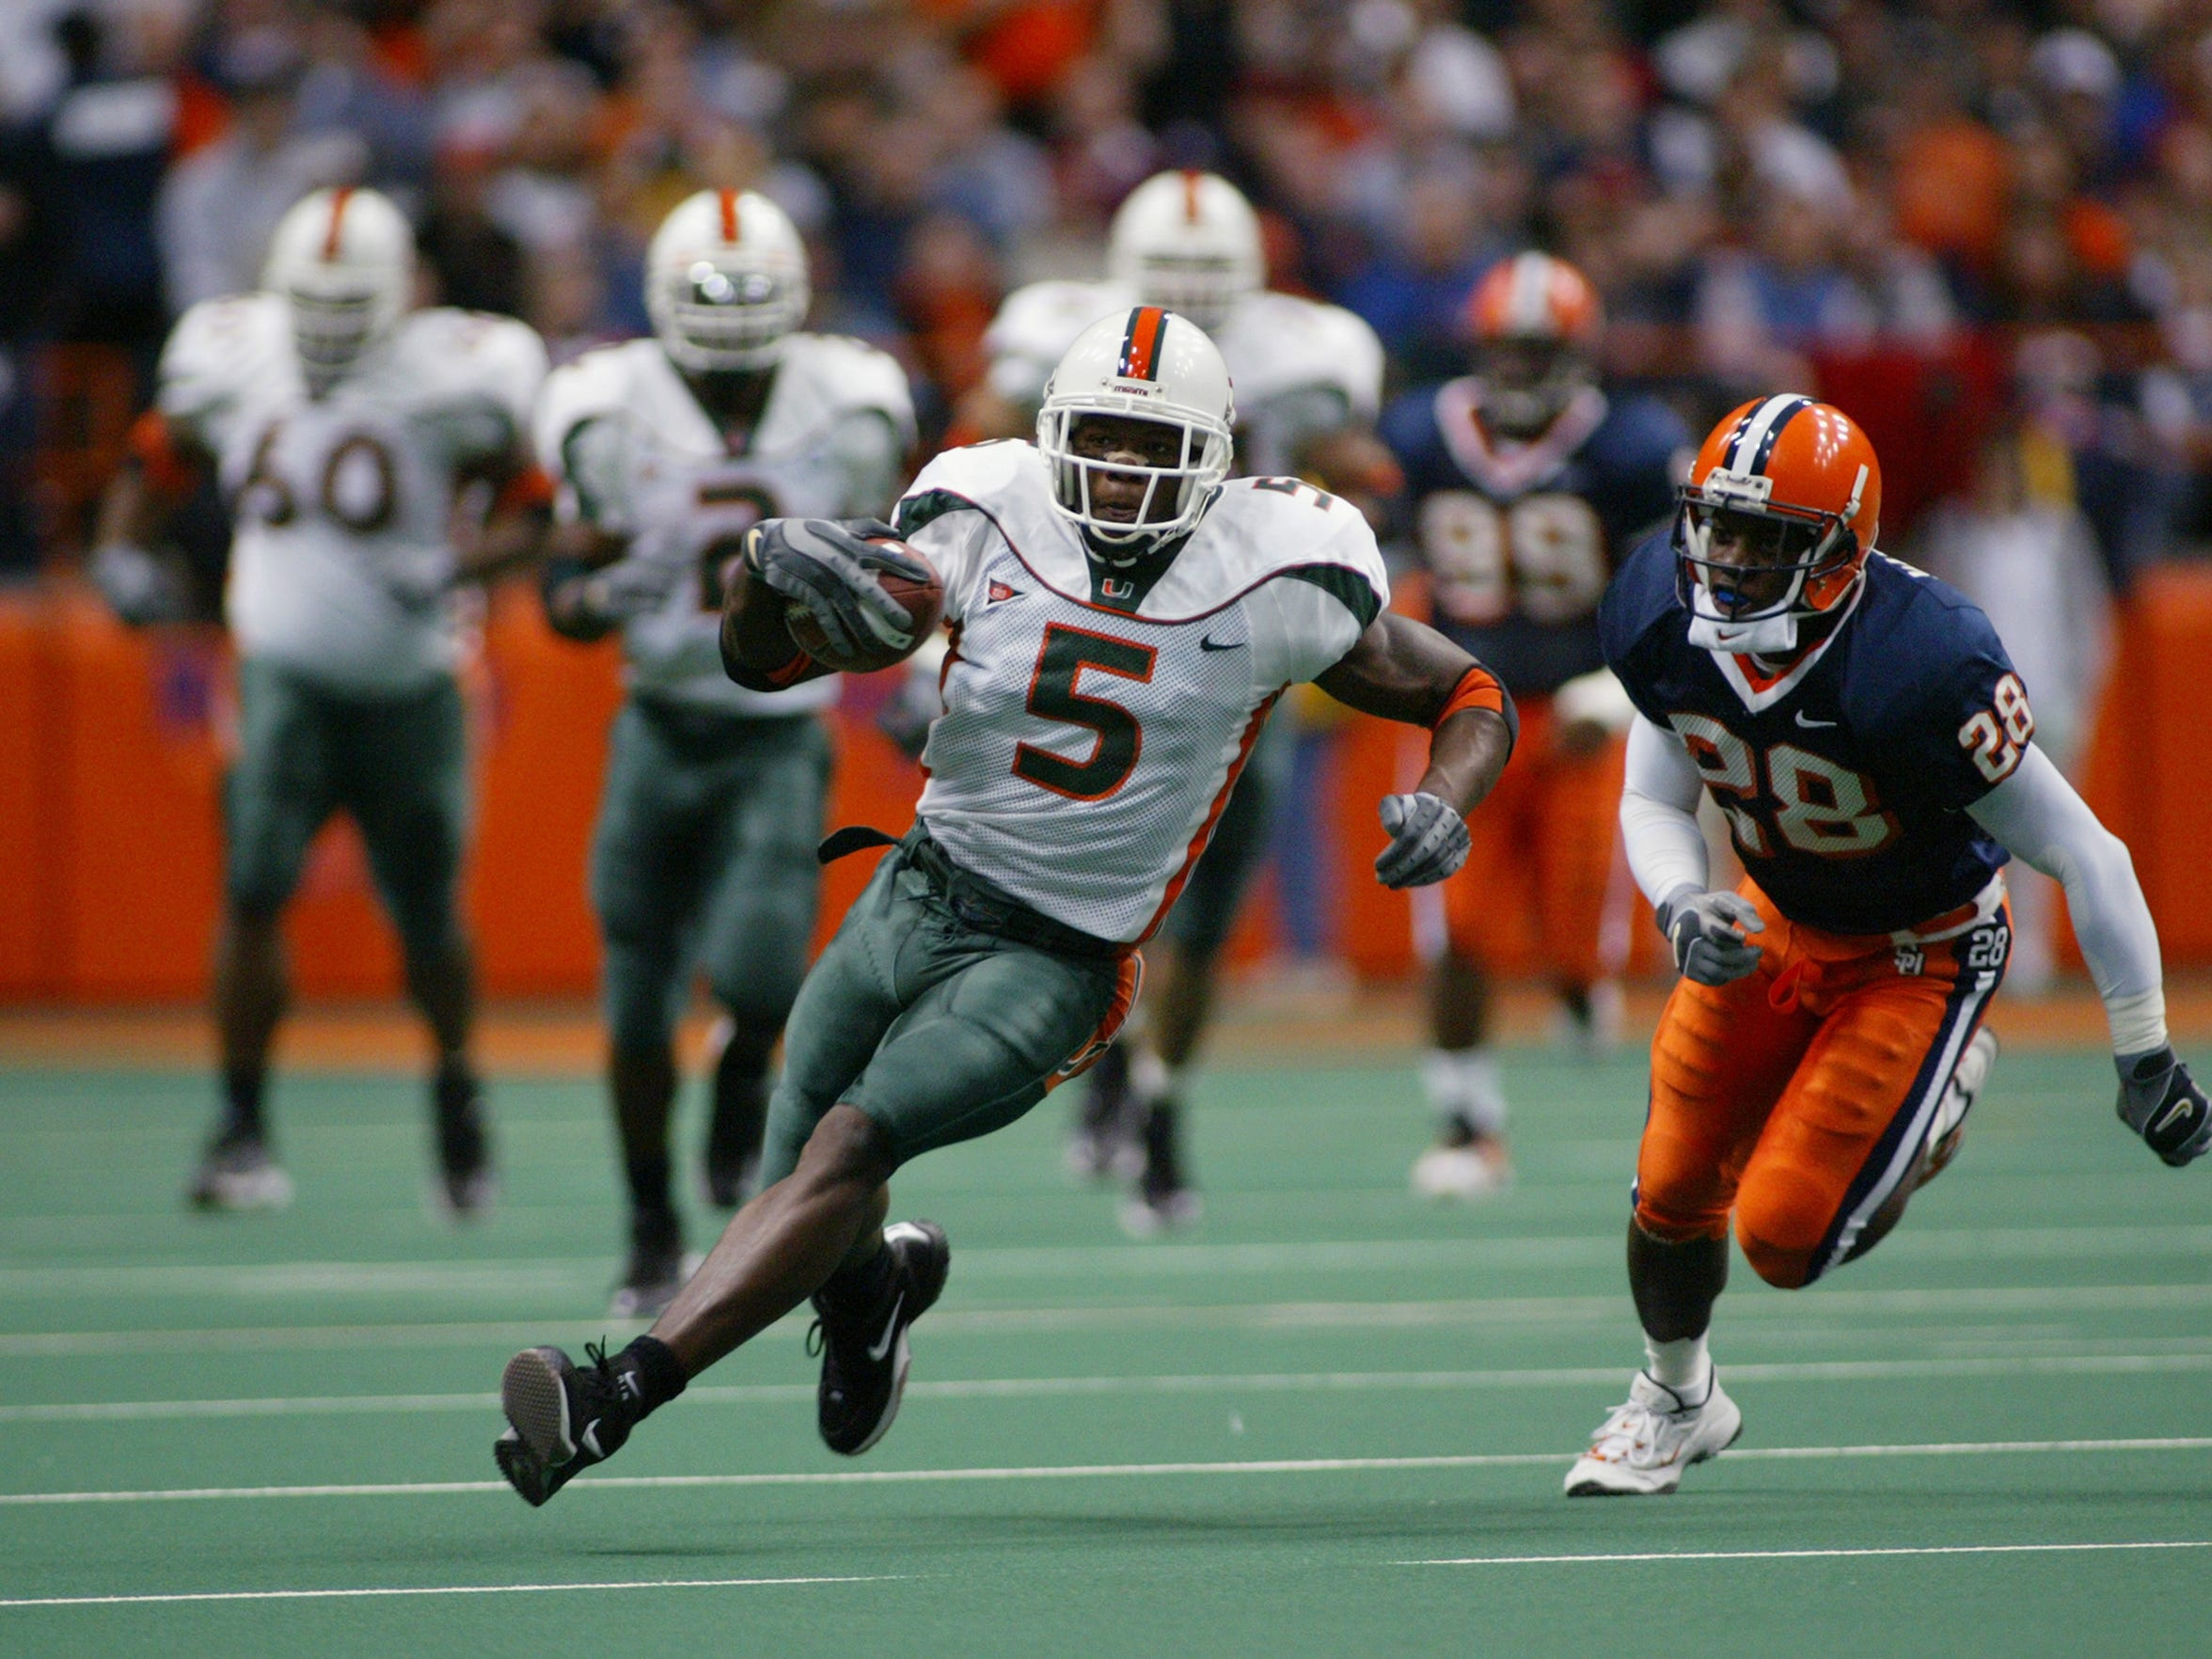 Andre Johnson was an All-American receiver at Miami and a key player on one of the greatest college football teams of all-time, the 2001 Hurricanes.